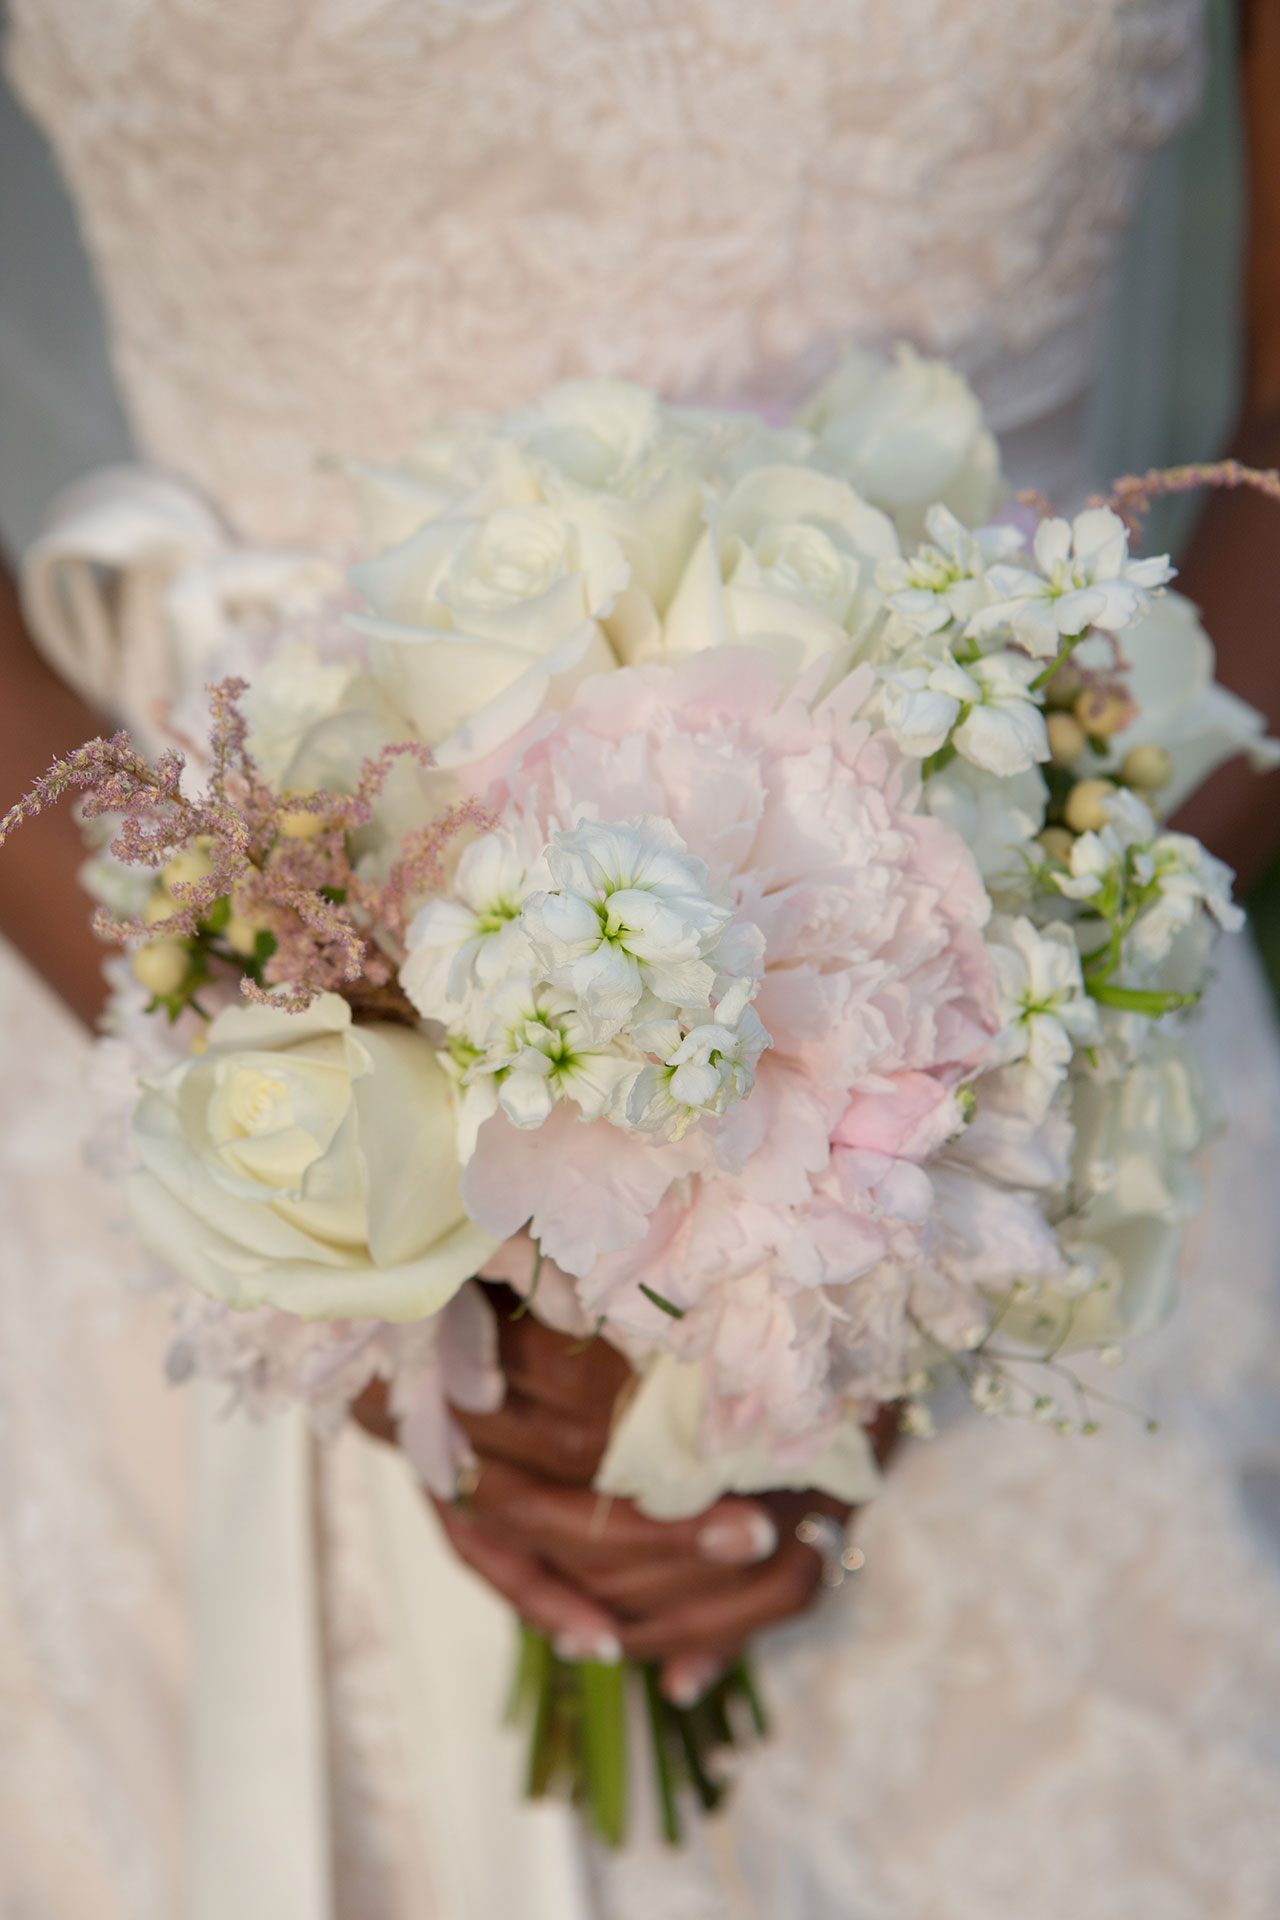 Sadler-Remnant-Fellowship-Wedding-Flower-Bouquet